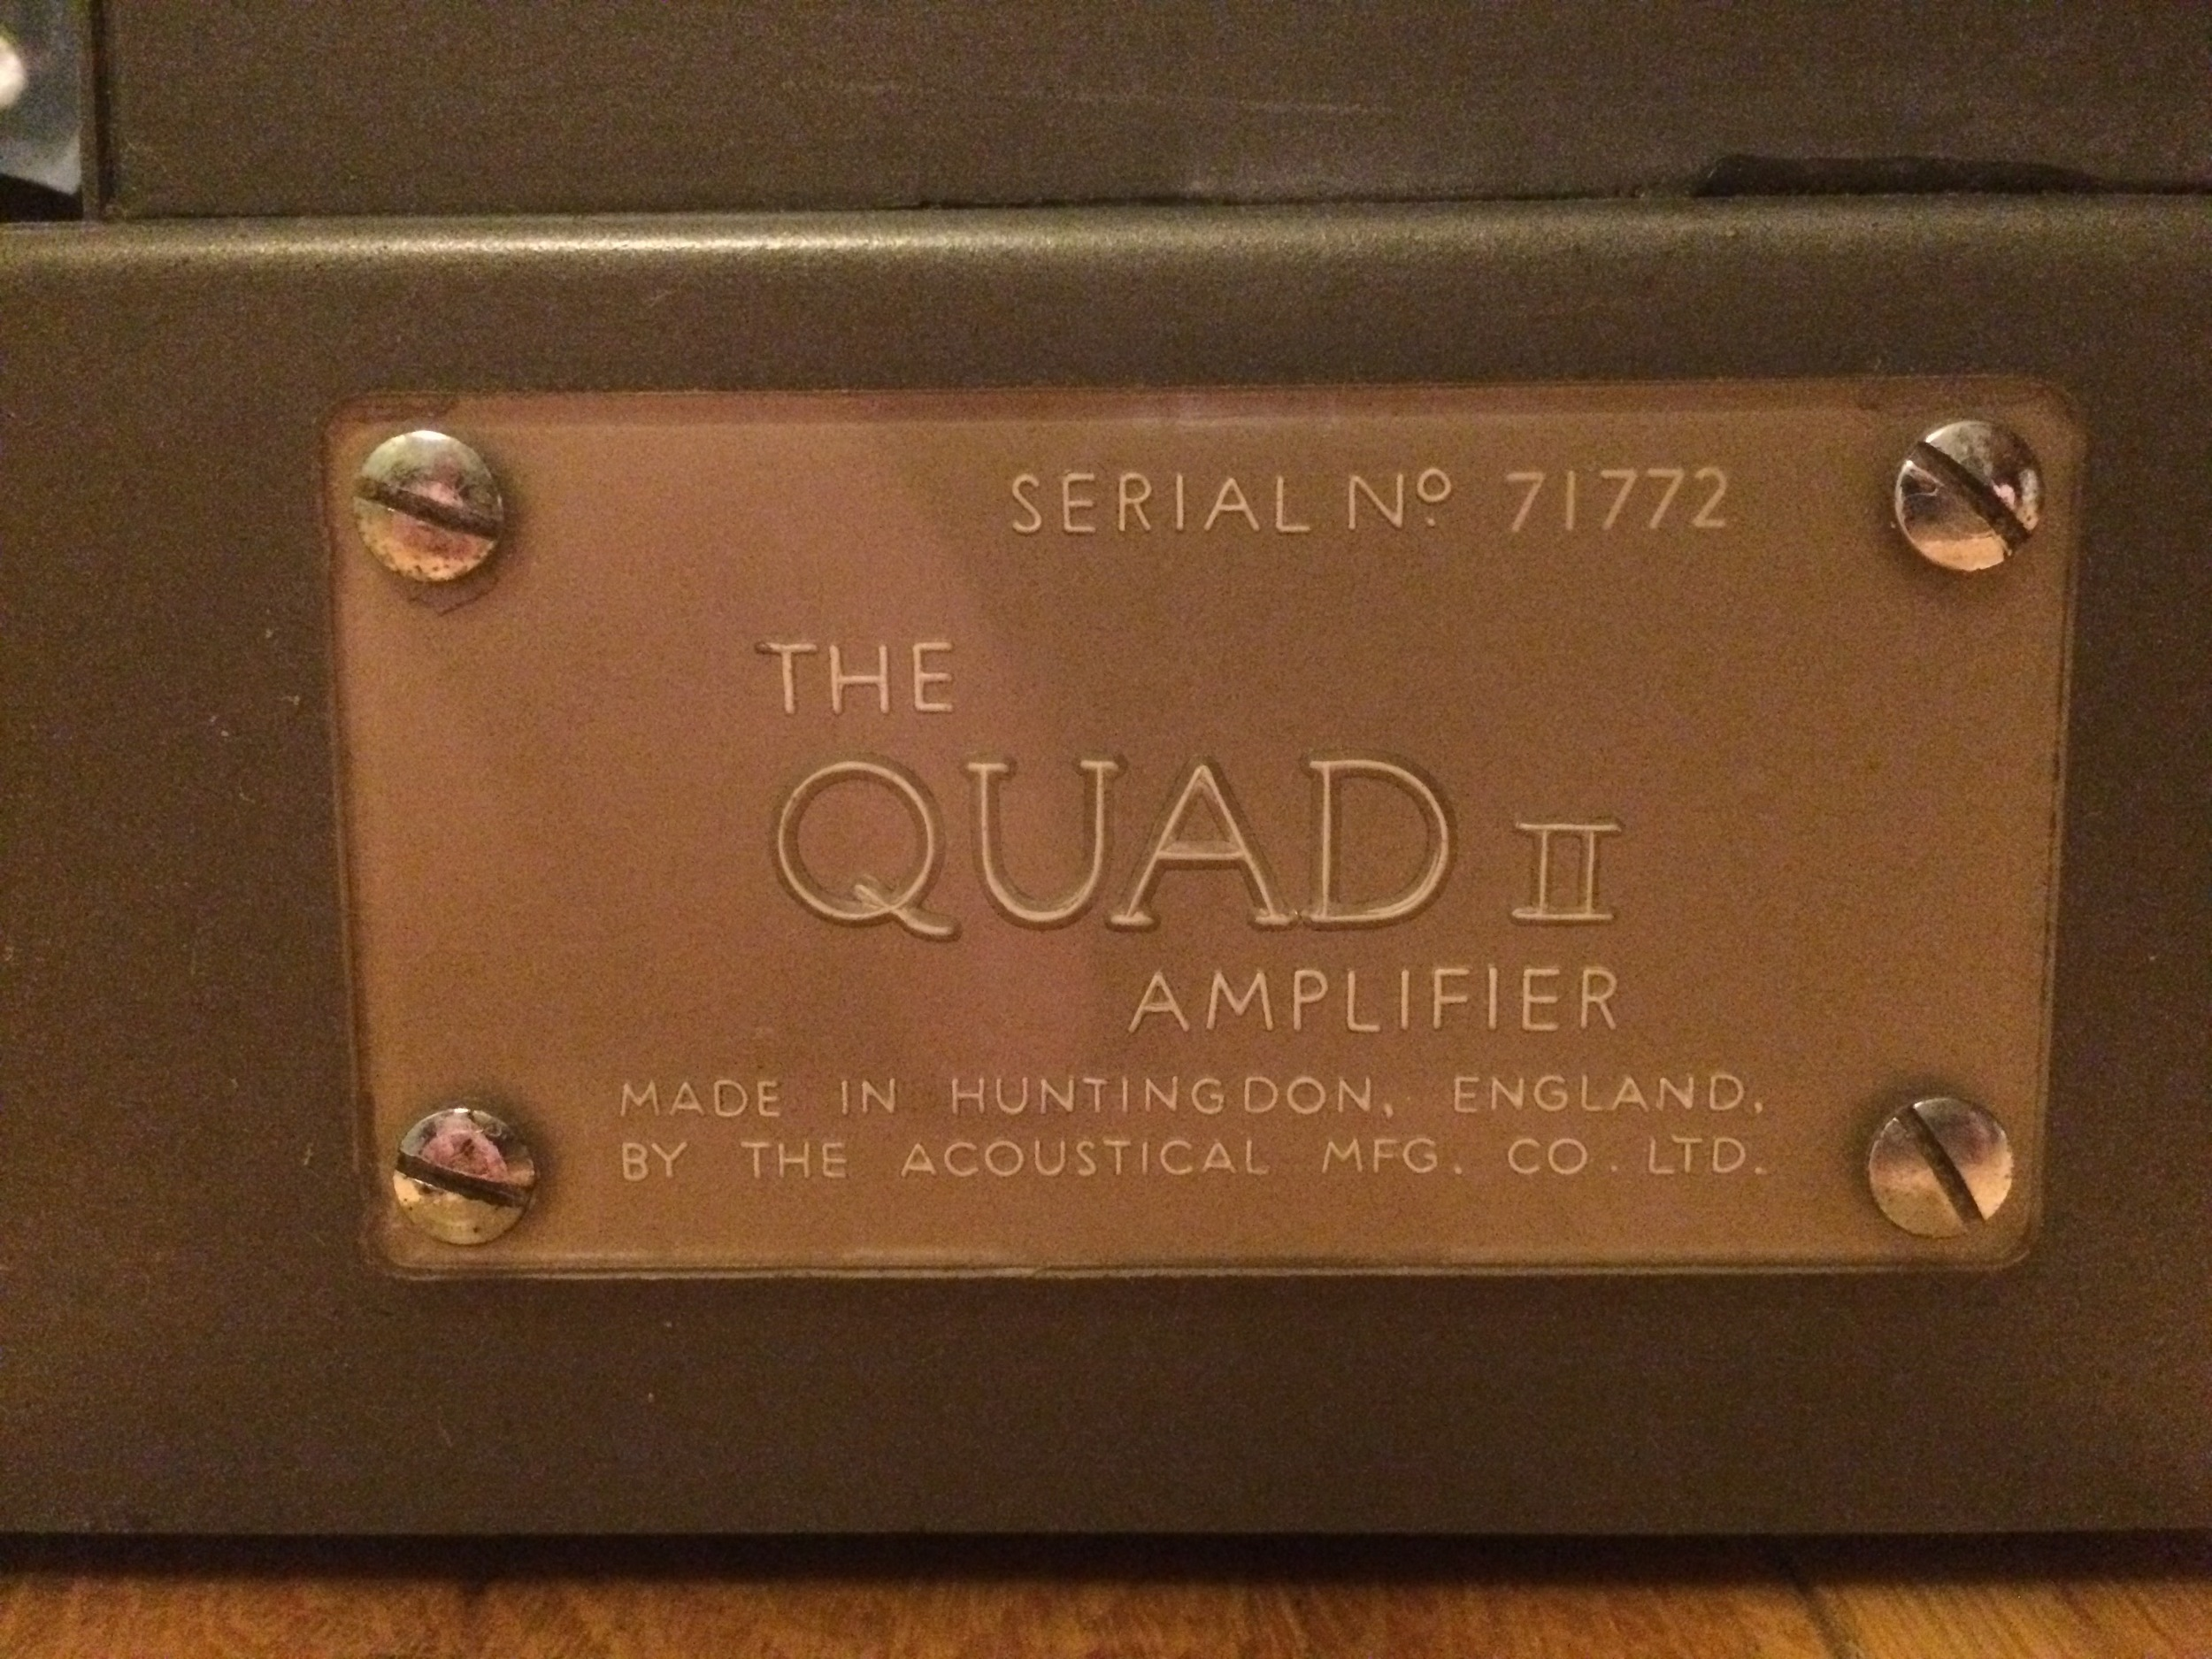 The Quad plaque, including serial number